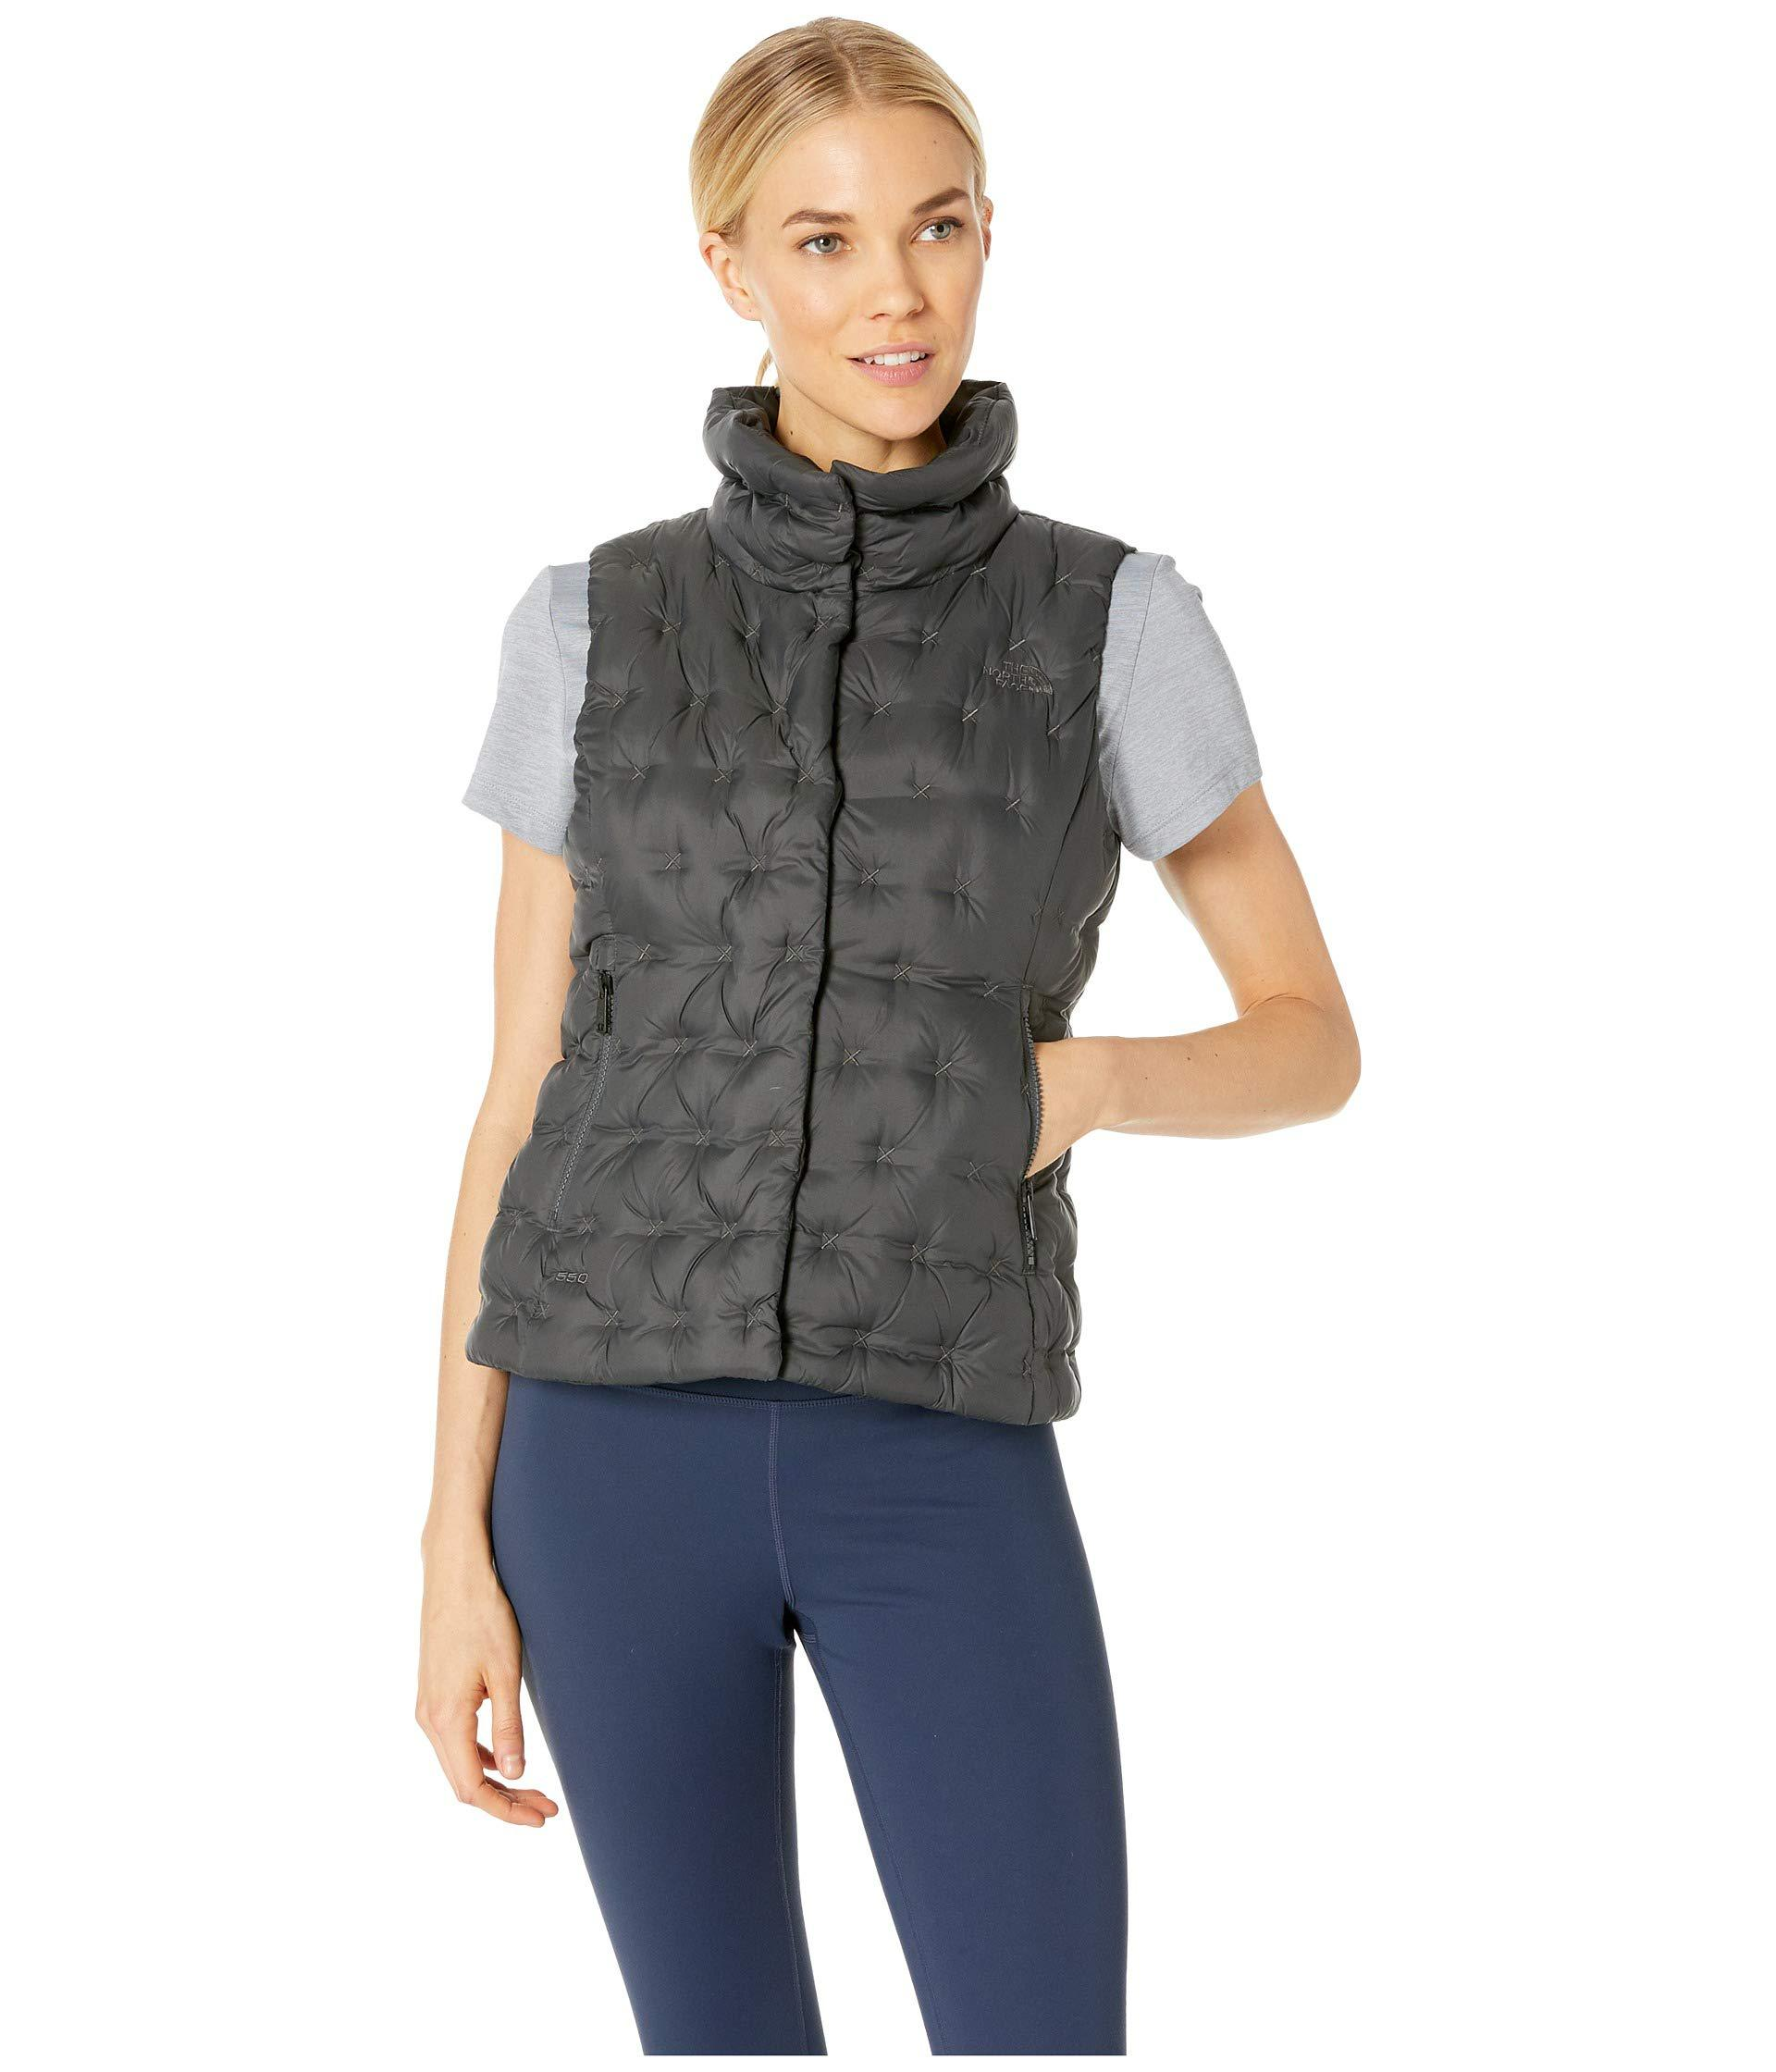 7430dd7a19 The North Face - Gray Holladown Crop Vest (tnf Black) Women s Vest - Lyst.  View fullscreen